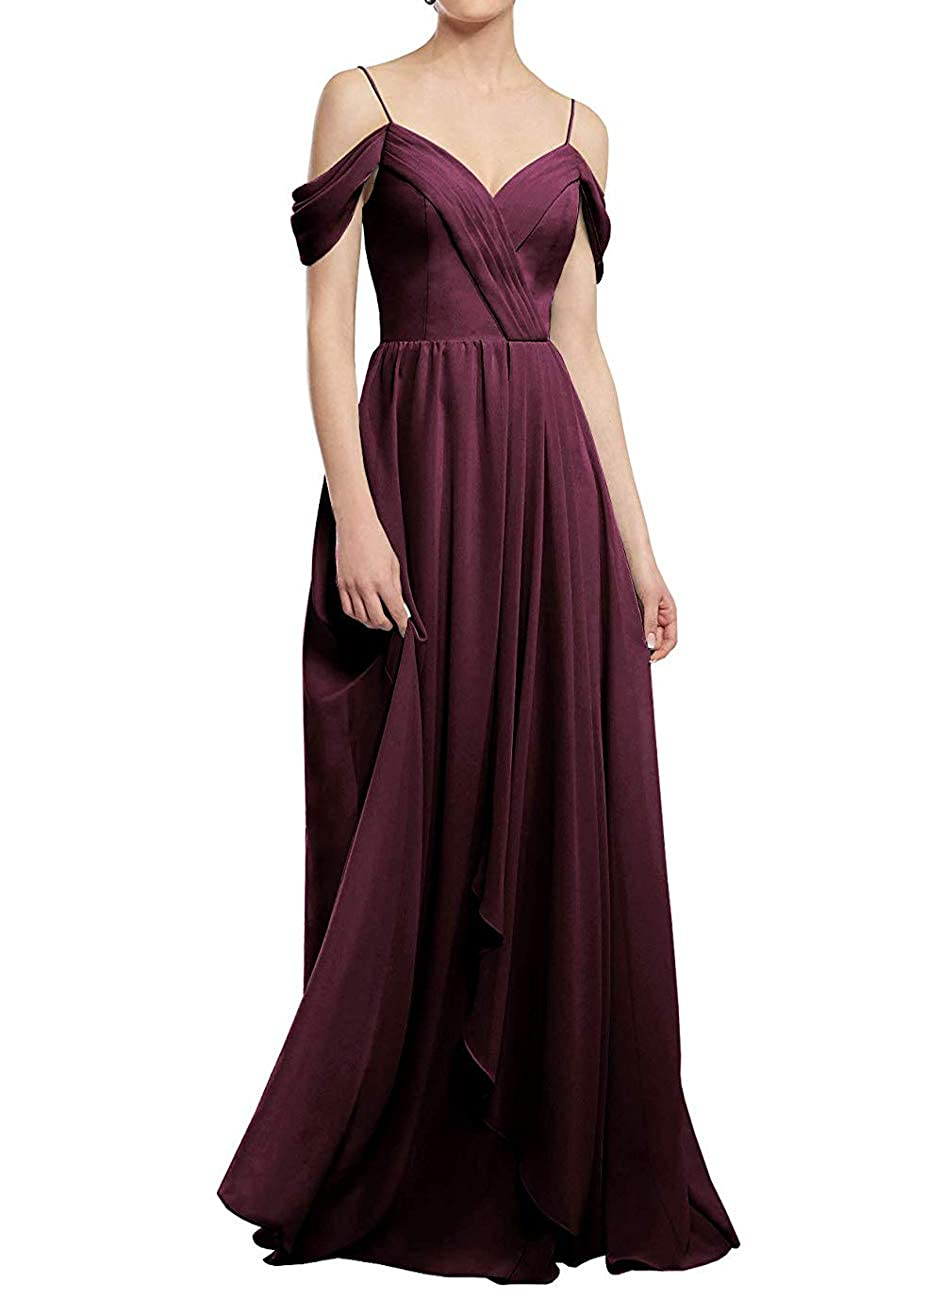 Burgundy PrettyTatum ALine Cold Shoulder Long Party Prom Gown Sweetheart Neckline Bridesmaid Dresses